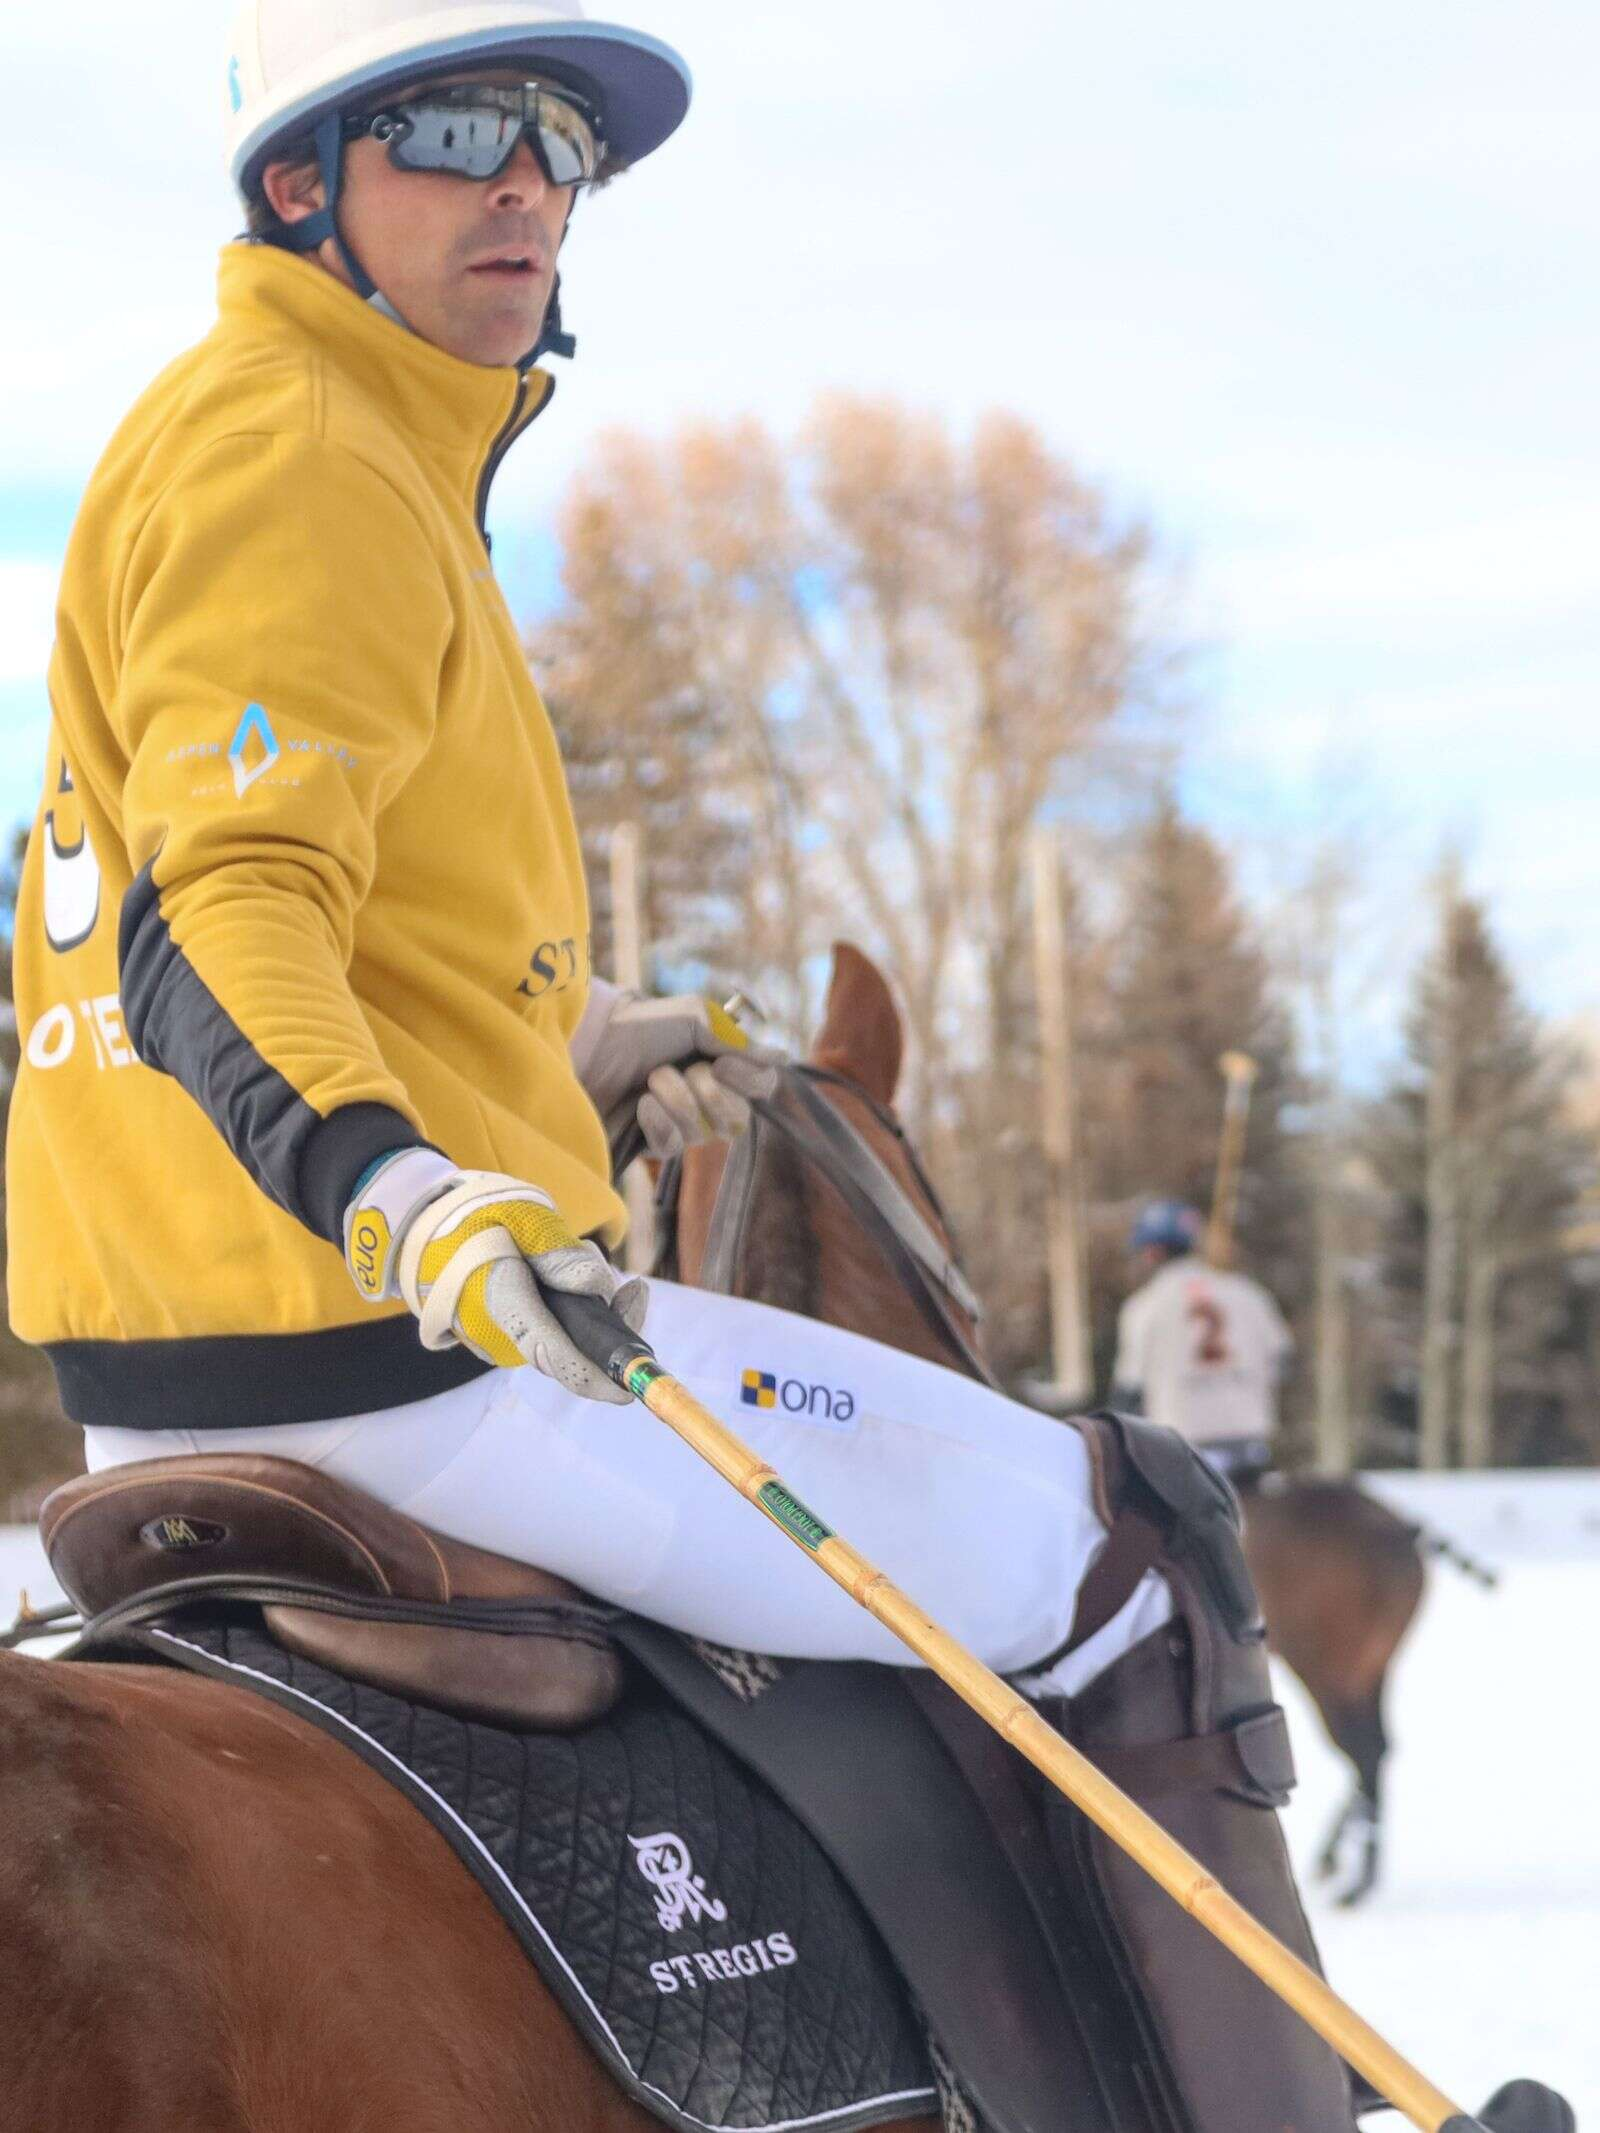 Nacho Figueras competes in the World Snow Polo Championship on Sunday, Dec. 20, 2020, at Rio Grande Park in Aspen. Photo by Austin Colbert/The Aspen Times.